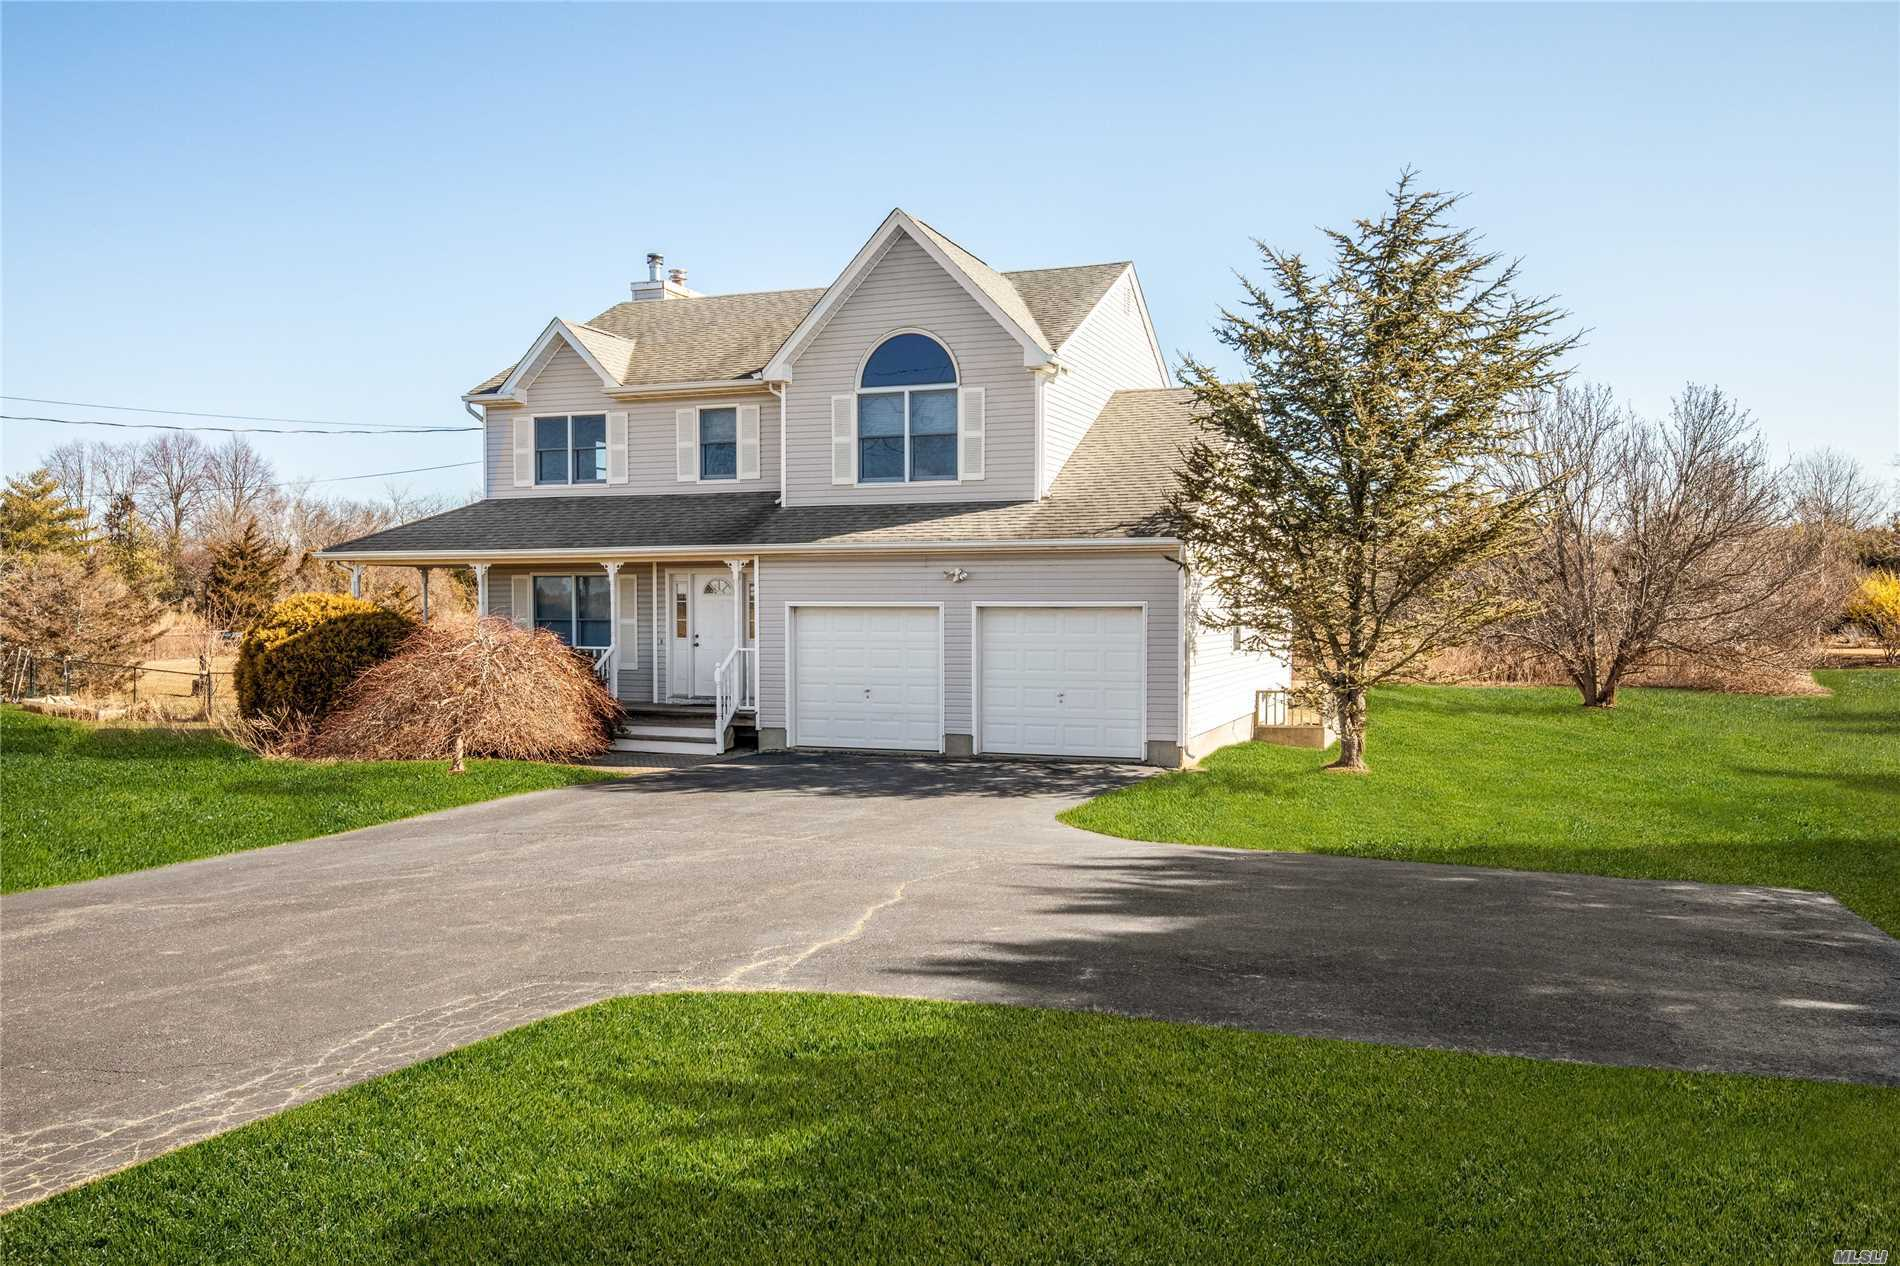 Perfect Family home, 4 br, 2.5 baths, Open Floor plan, family room with fireplace, kitchen nook, formal dining room. MBR ensuite, full basement, outside entrance, shy acre, room for pool. Westerly facing, sunsets galore over Farmland. This is a must see listing.